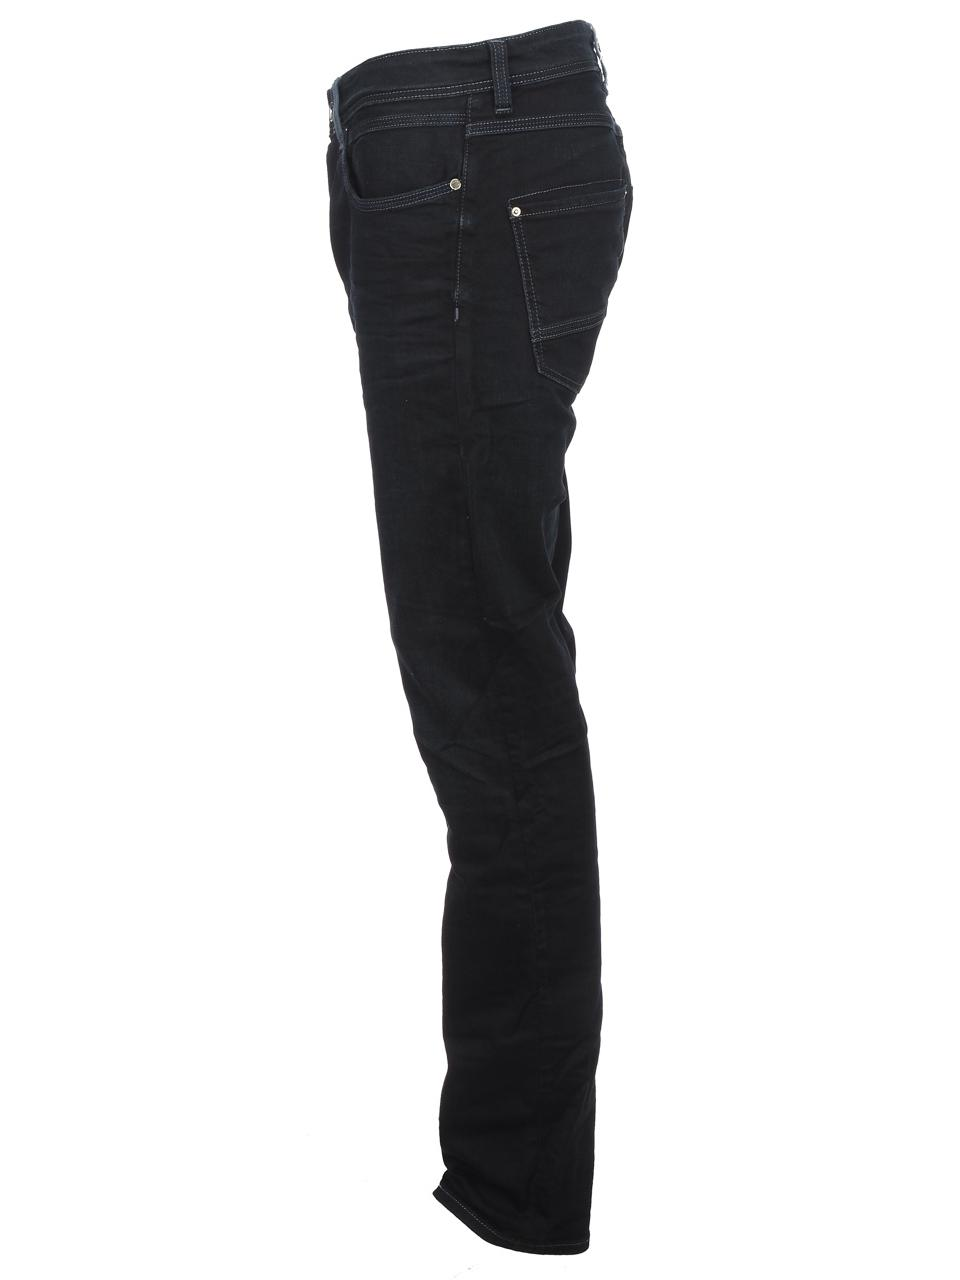 Trousers-Slim-Jeans-Teddy-smith-Rope-Reg-Comf-Usedoldencr-Blue-59500-New thumbnail 2